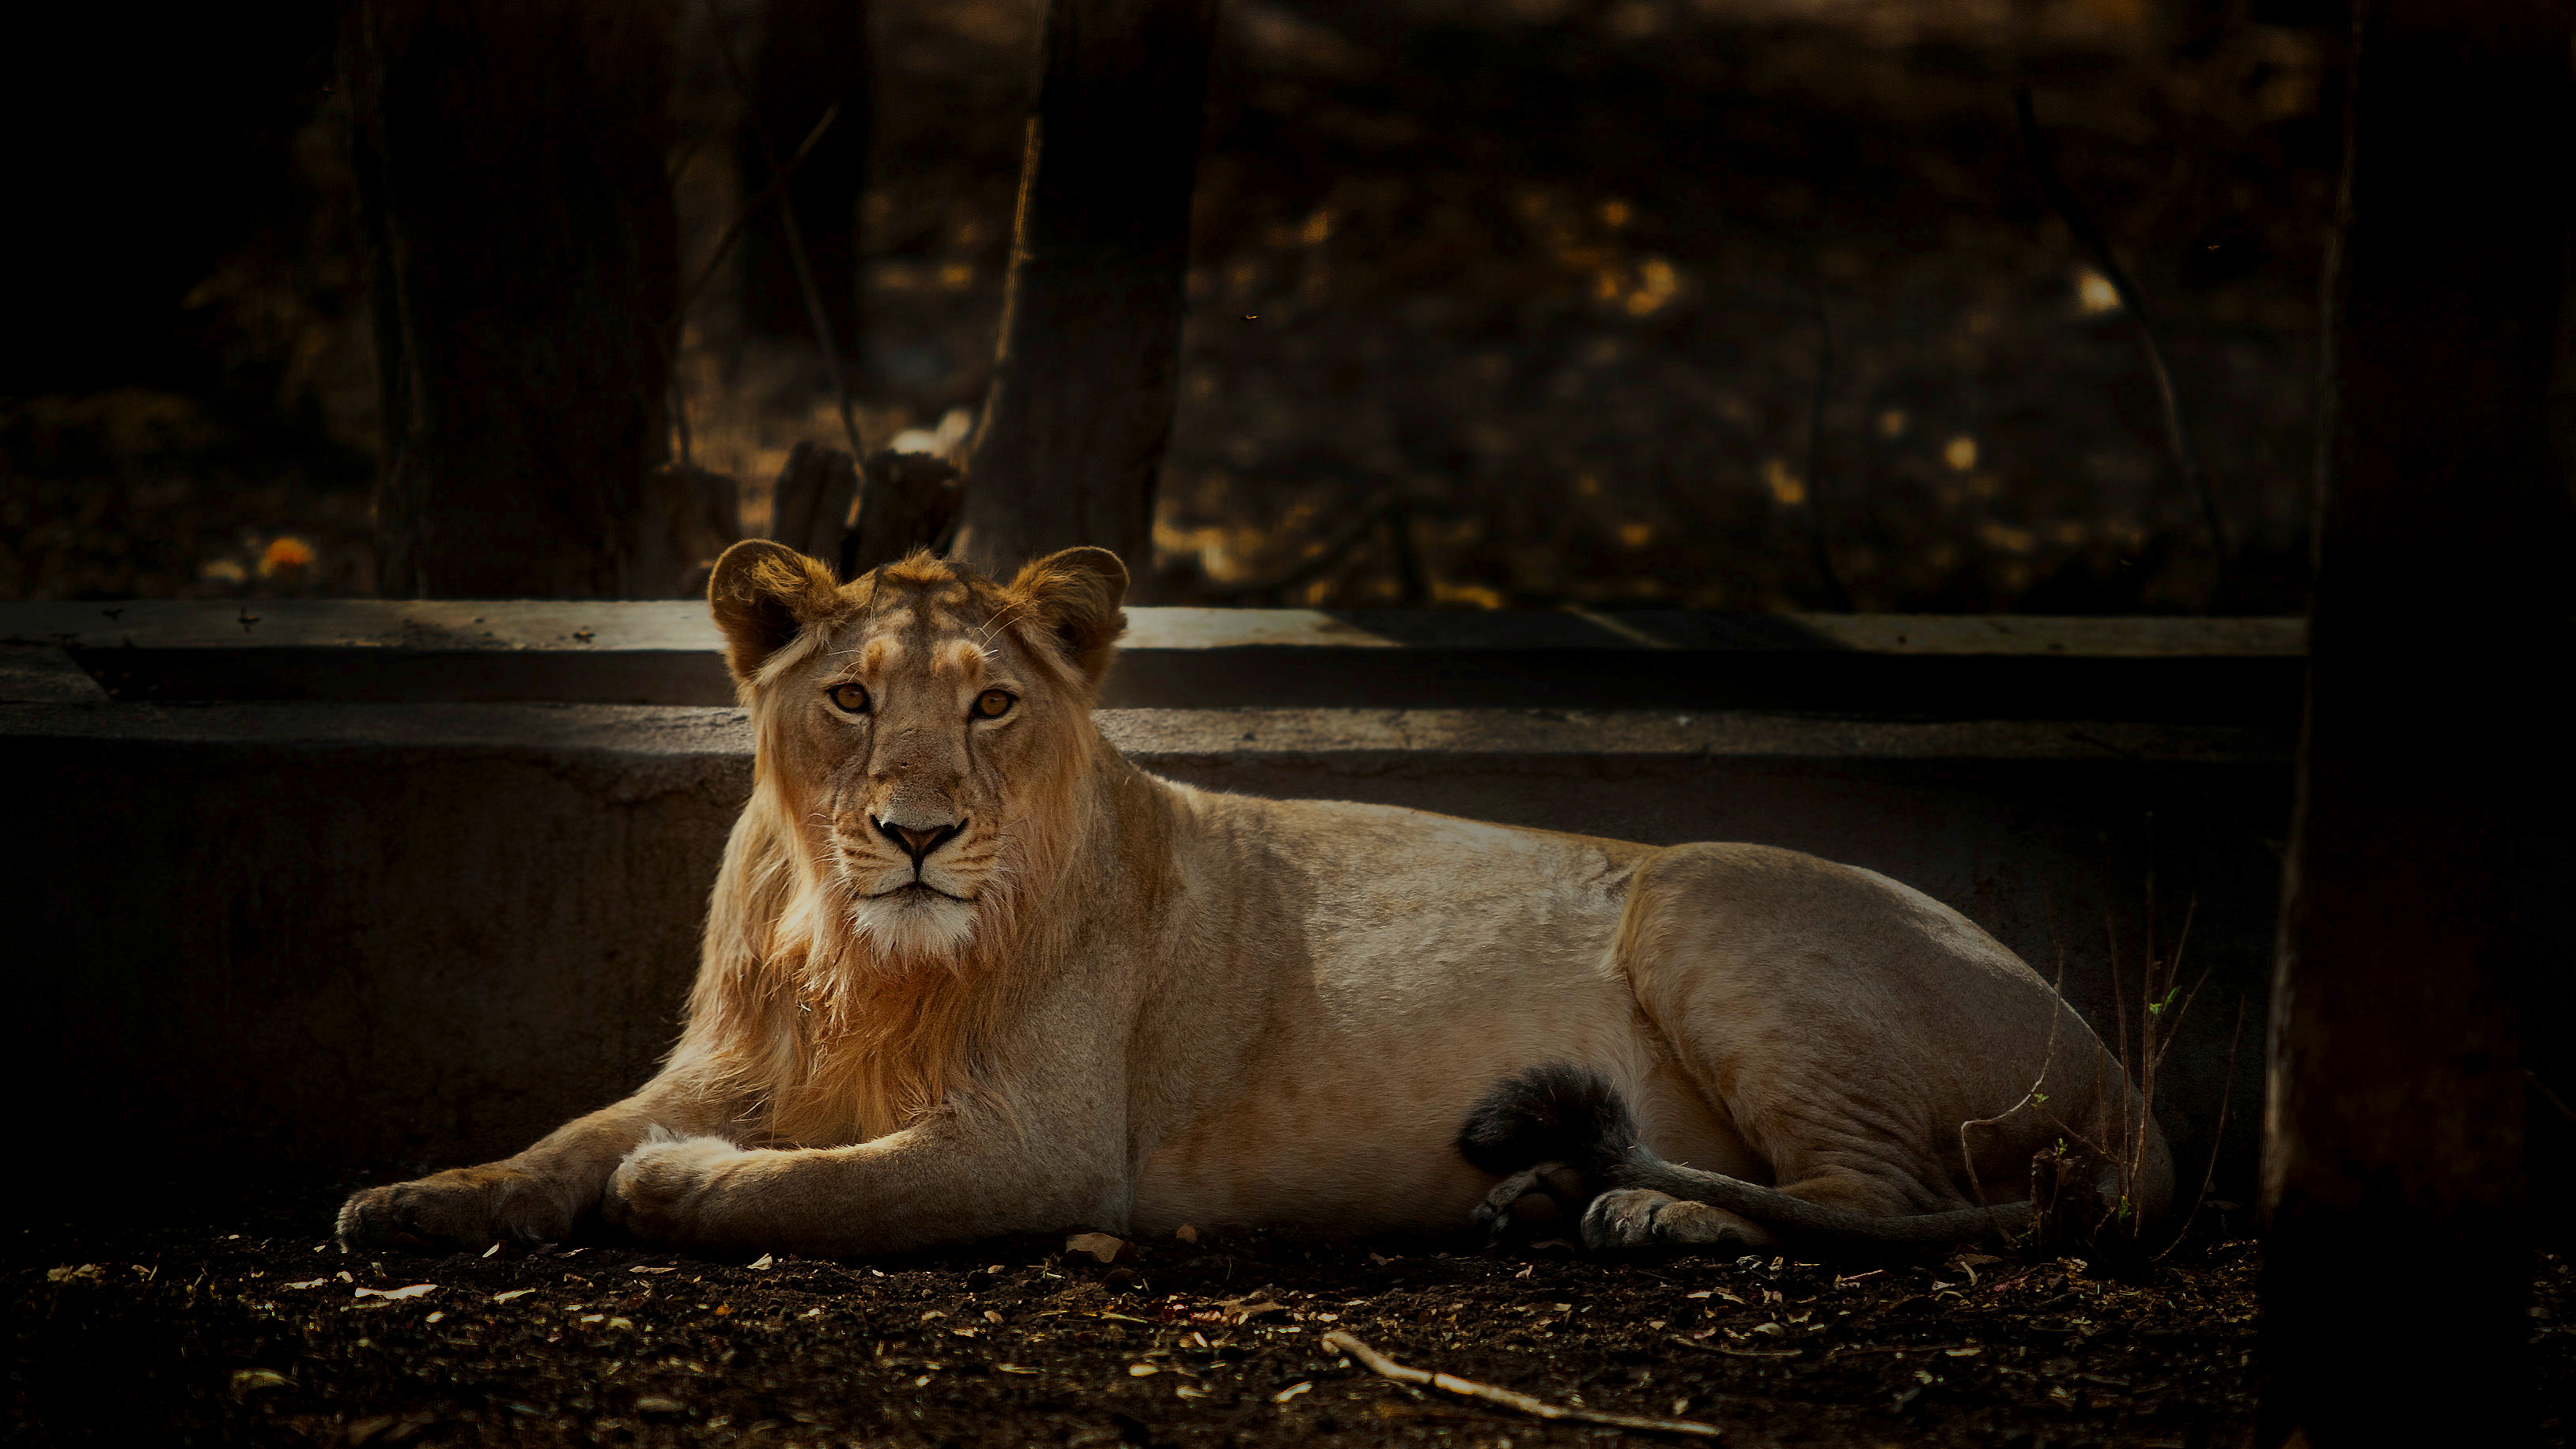 A sub-adult male lion rests by a water trough in heart of Gir National Park. Male lions tend to stay with the pride till maturity, after which they strike out on their own